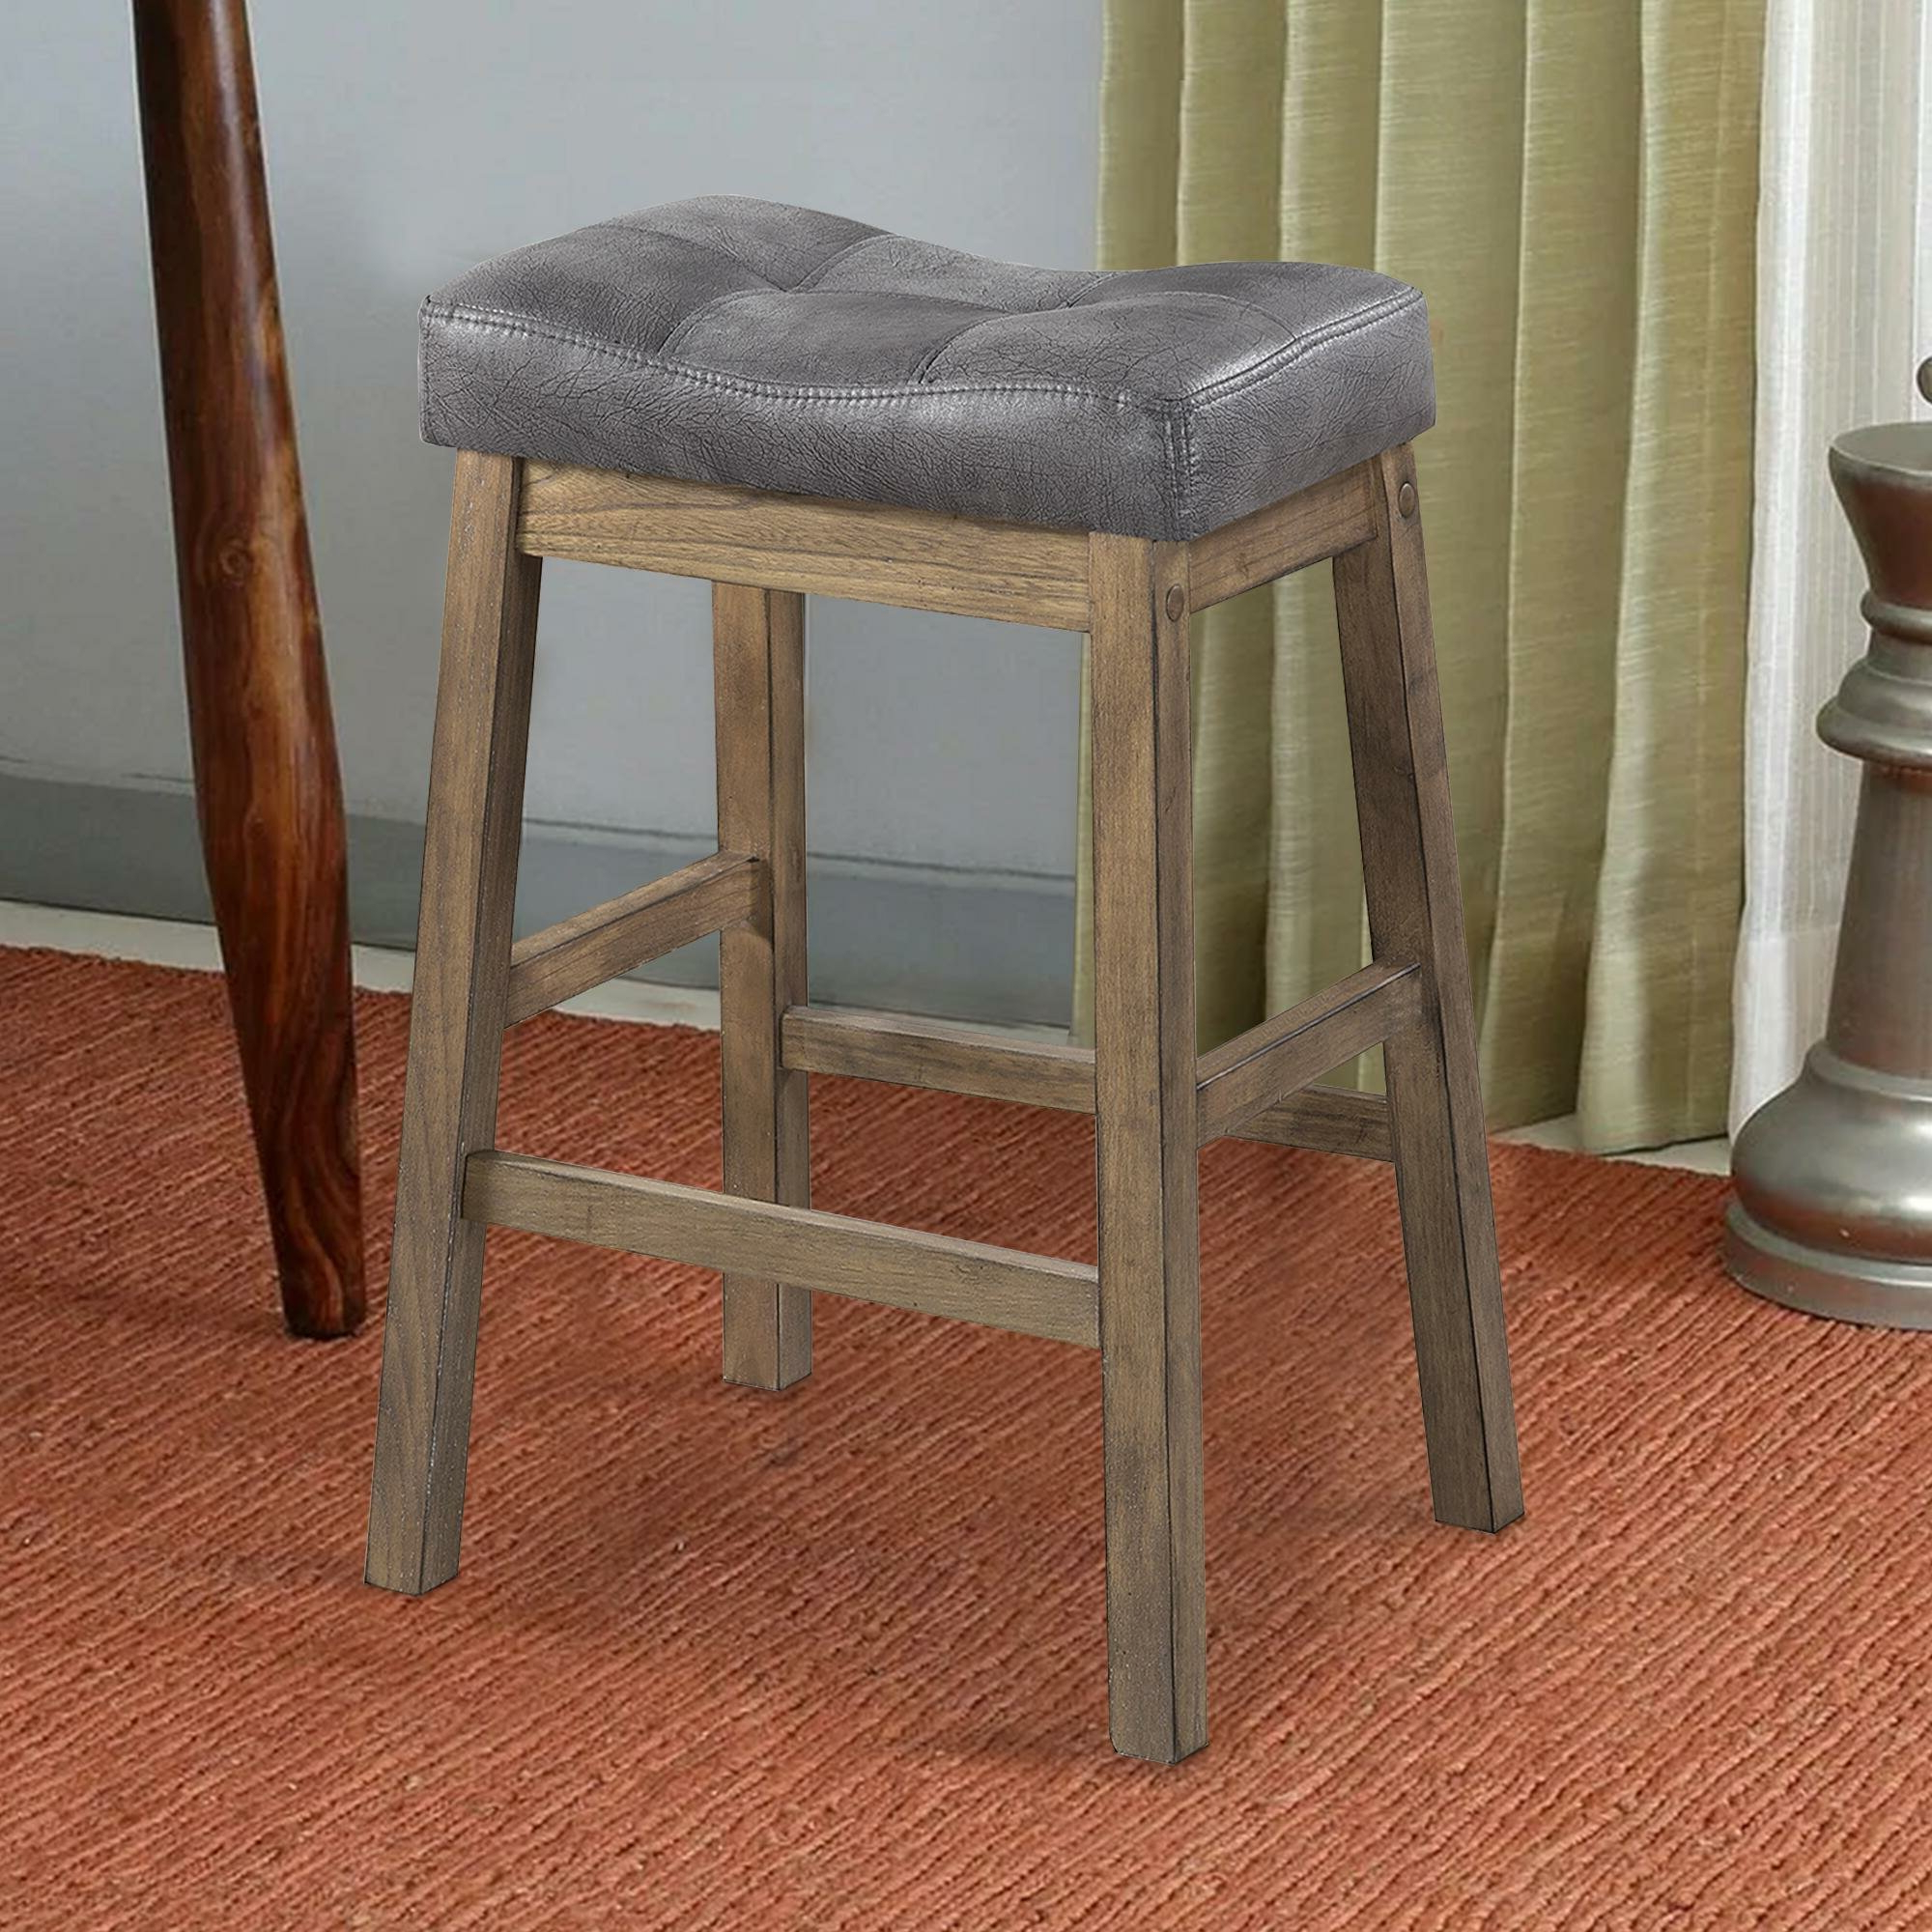 Stanwood Counter & Bar Stool Inside Famous Standwood Metal Garden Stools (View 4 of 30)